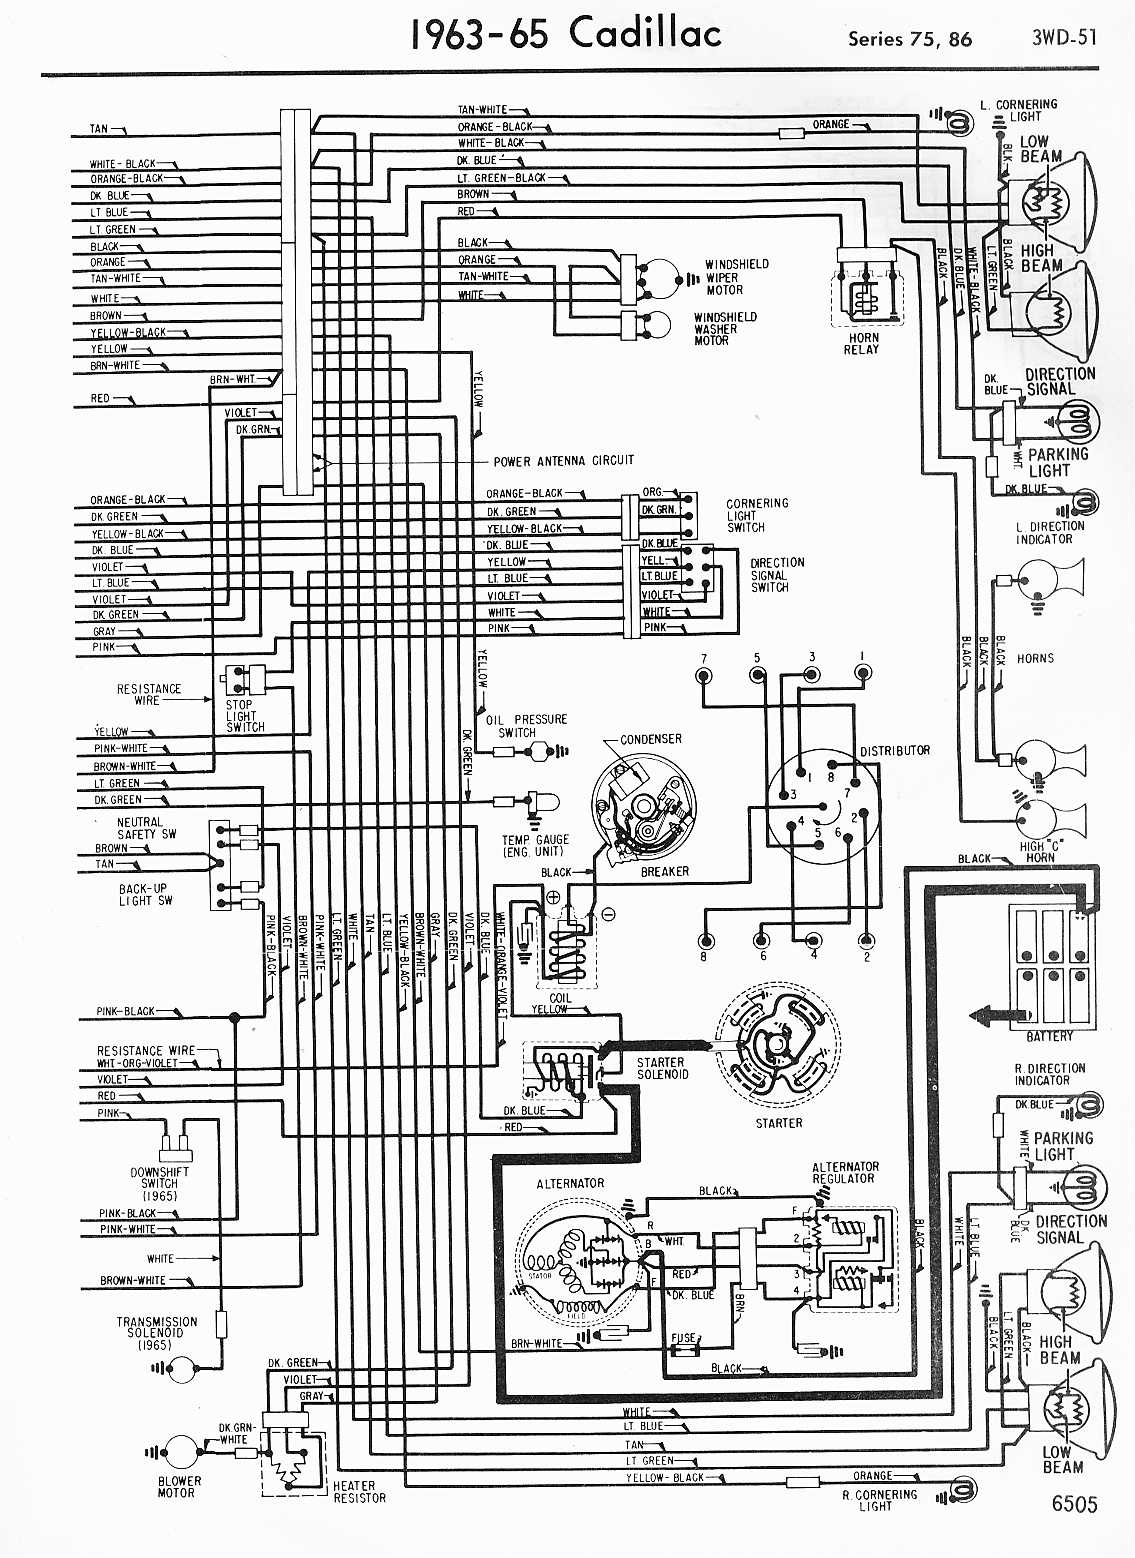 2003 Cadillac Cts Driver Seat Wiring Diagram Library Fuse Box In Diagrams 1957 1965 96 Schematics